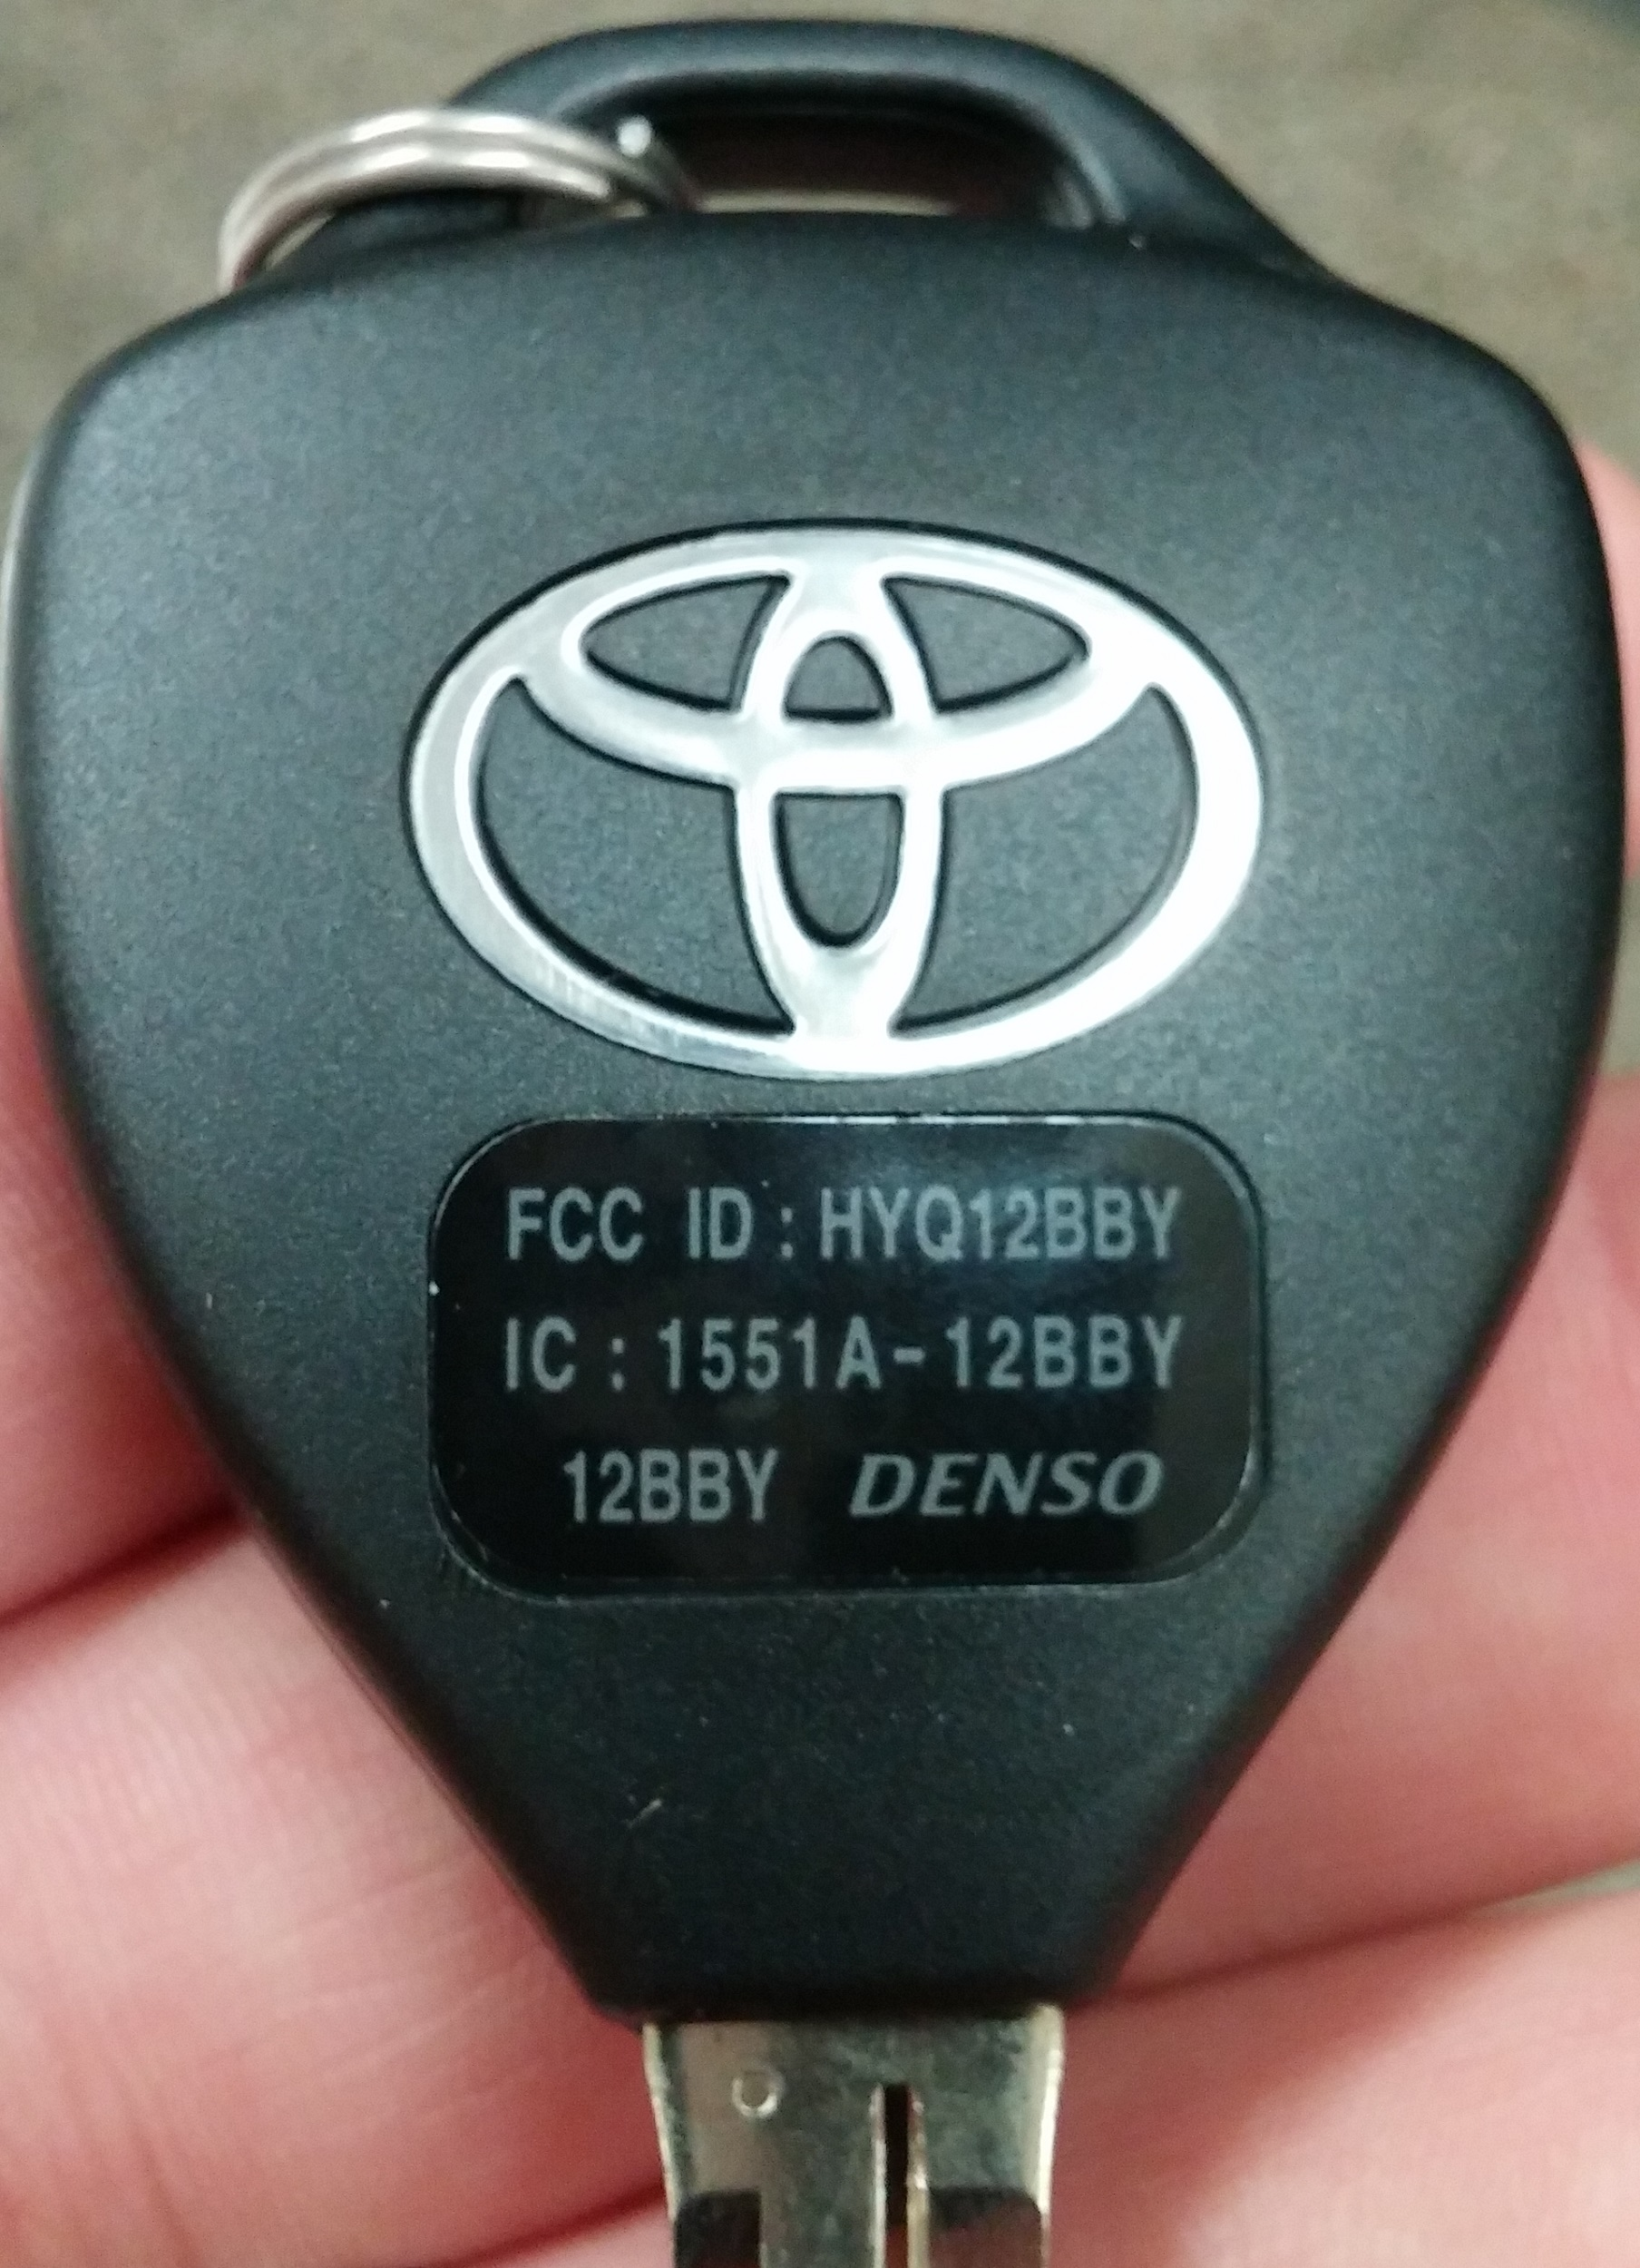 toyota camry 2008 key fob remote uncut 4 buttons key. Black Bedroom Furniture Sets. Home Design Ideas